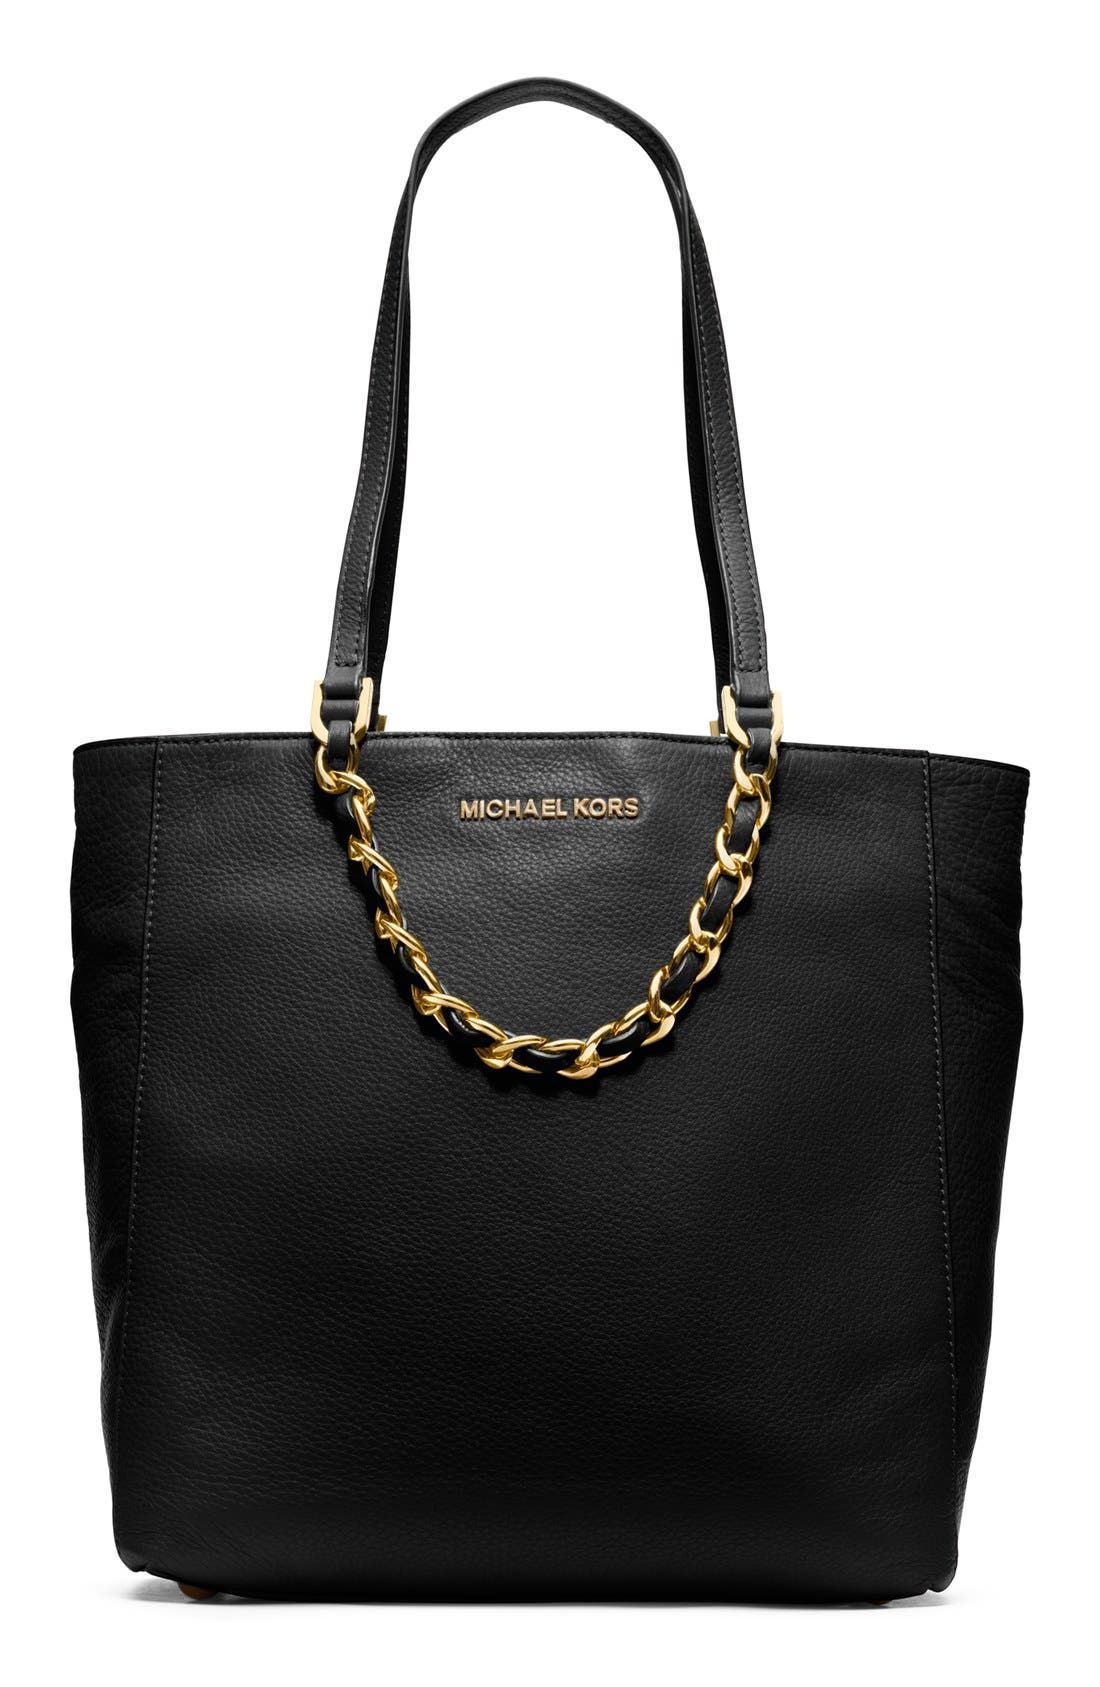 Alternate Image 1 Selected - MICHAEL Michael Kors 'Large North/South' Leather Tote